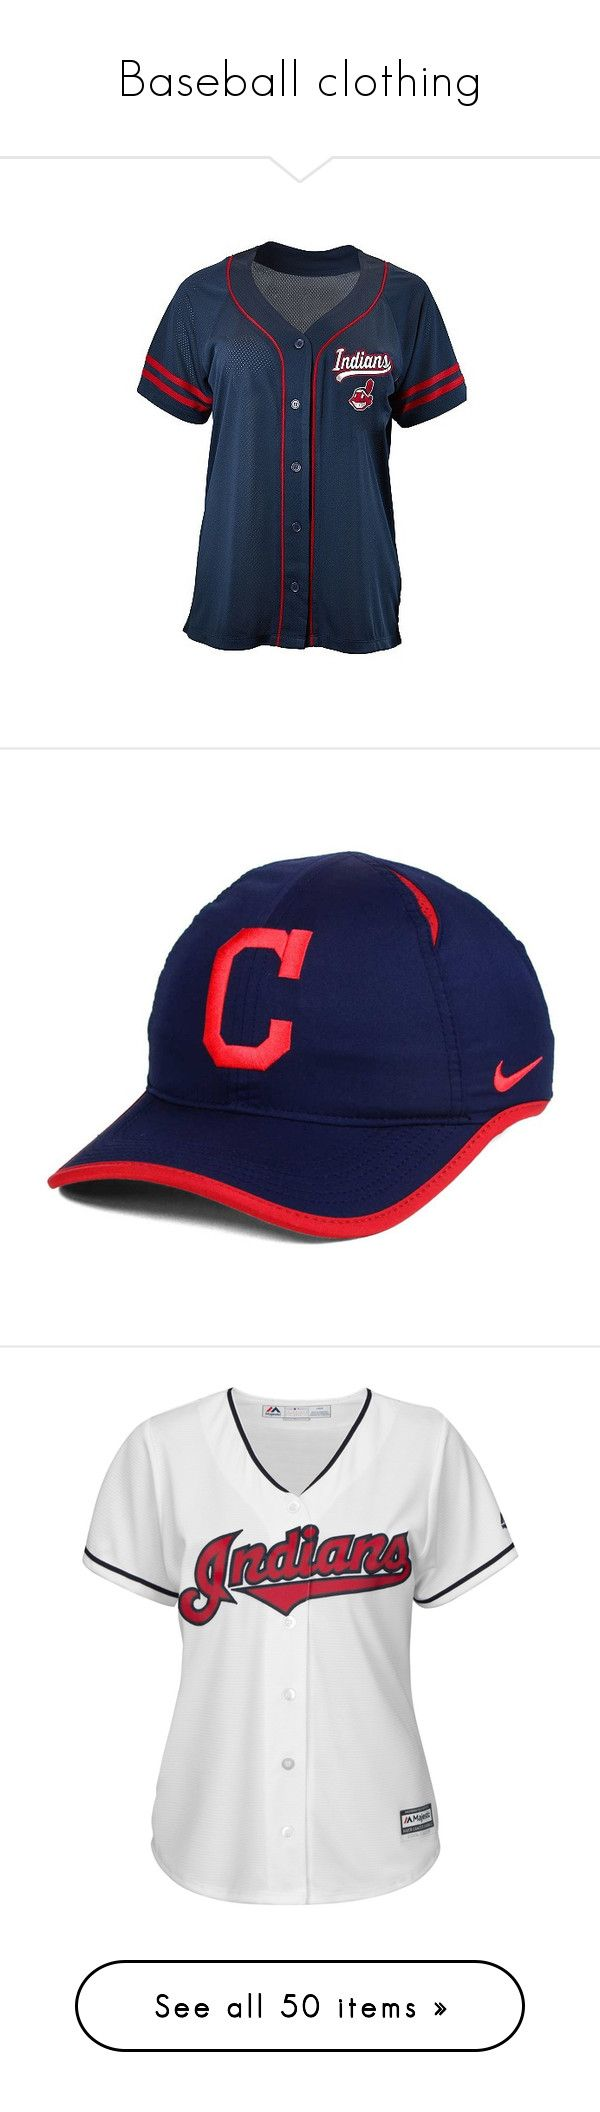 """Baseball clothing"" by jaiden-ortiz on Polyvore featuring activewear, activewear tops, cleveland indians, mesh jersey, print shirts, blue patterned shirt, mesh jersey shirt, athletic shirts, accessories and hats"